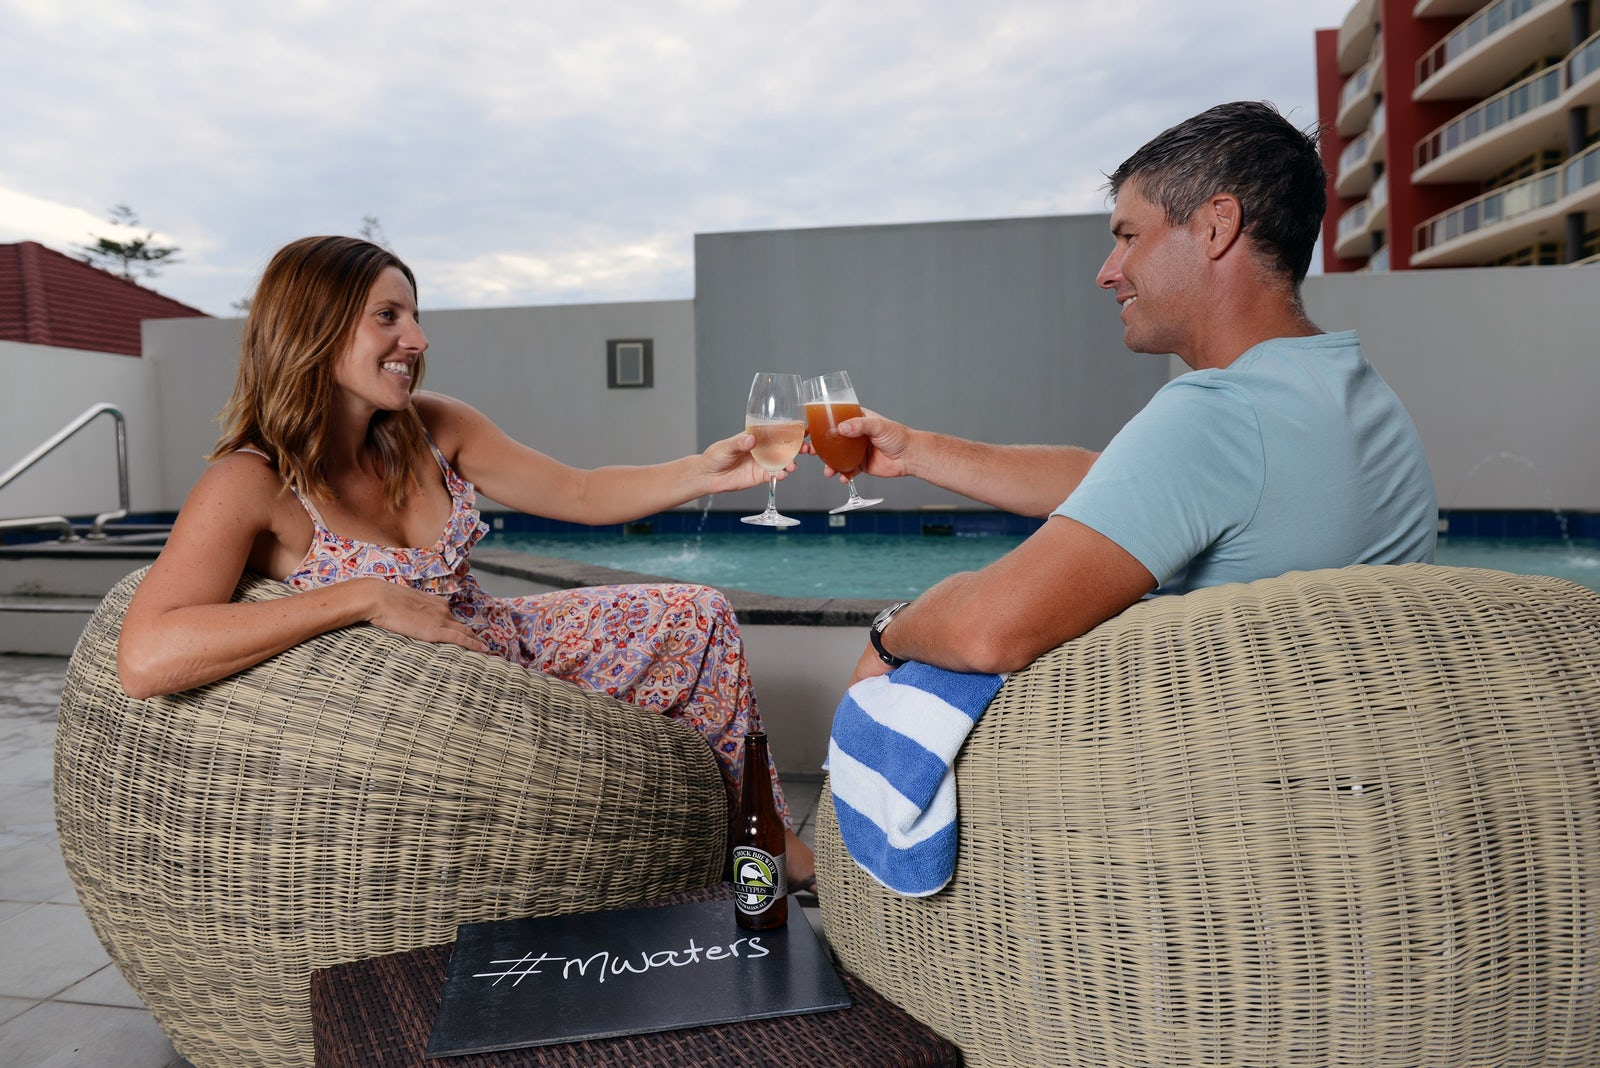 Couple Drinks beside the Pool at Macquarie Waters Hotel